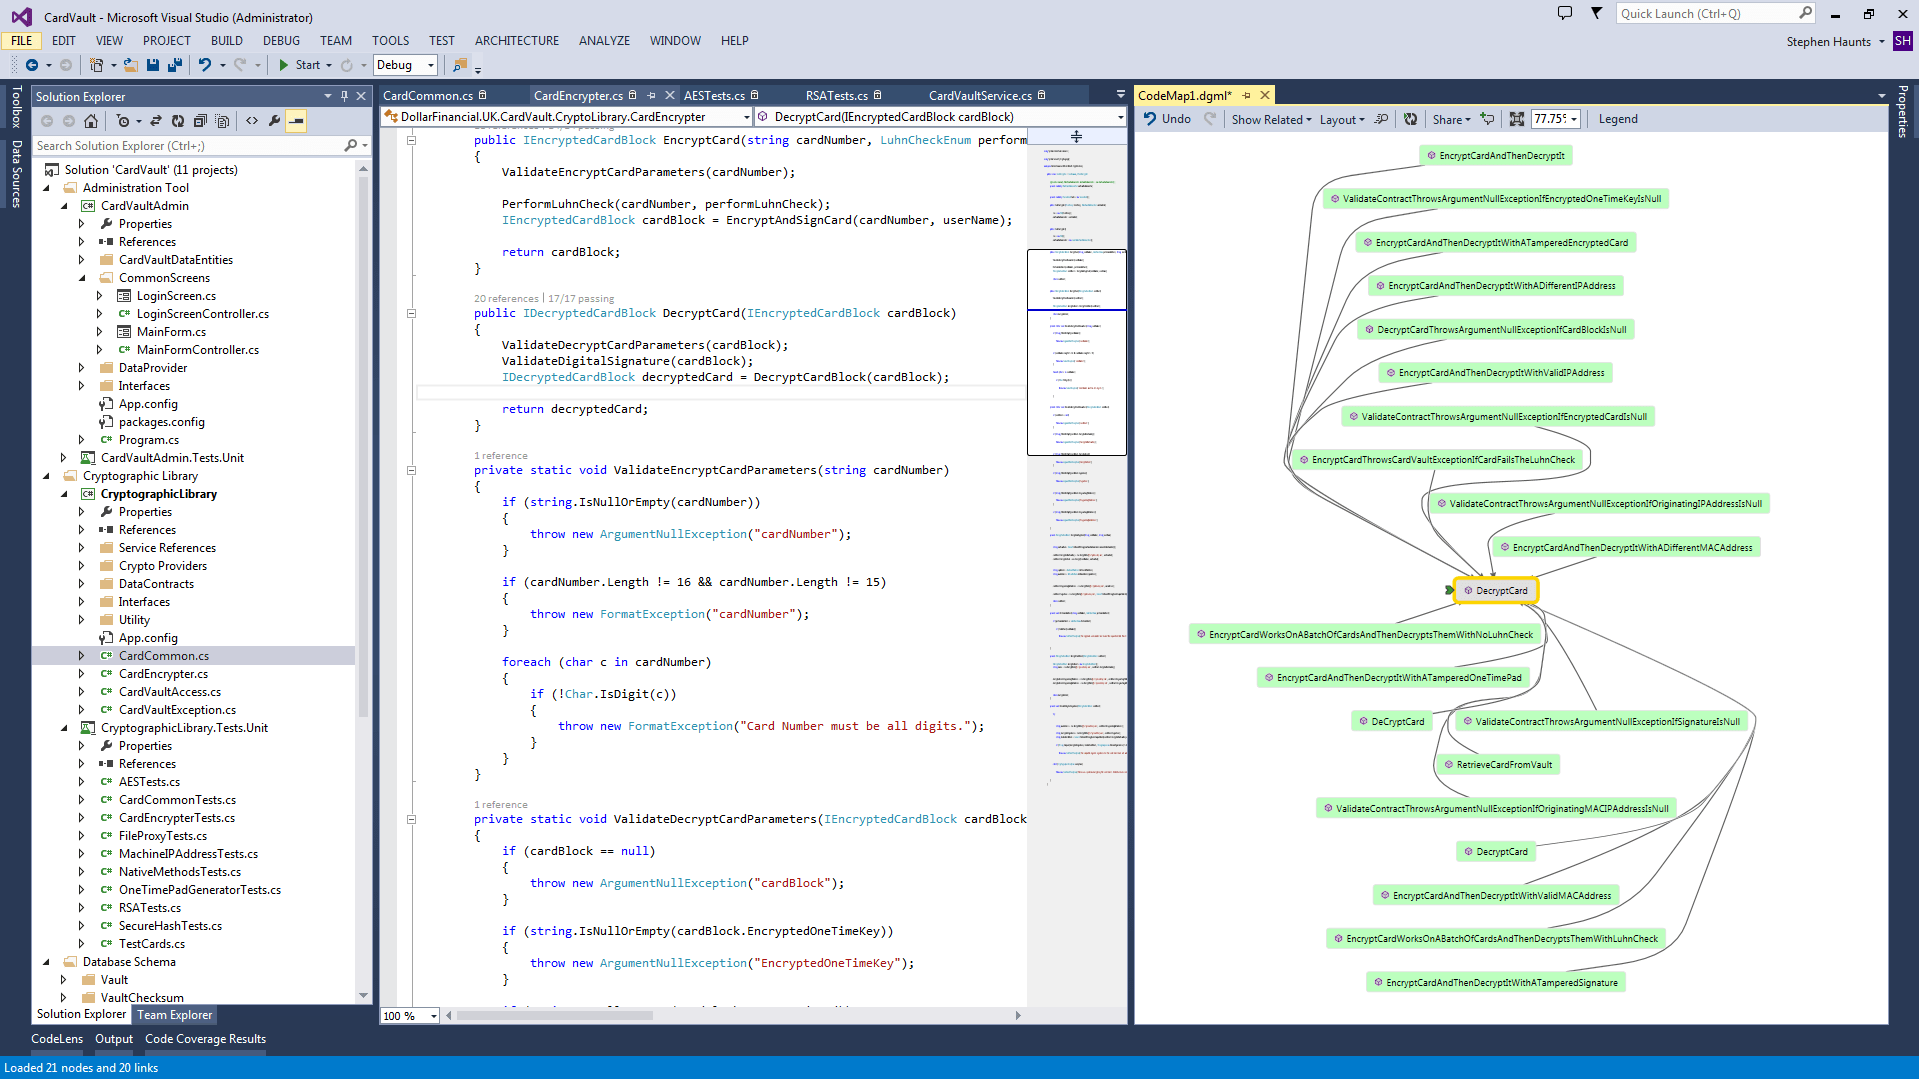 visual studio generate sequence diagram parallel battery wiring 2013 new ide features  stephen haunts